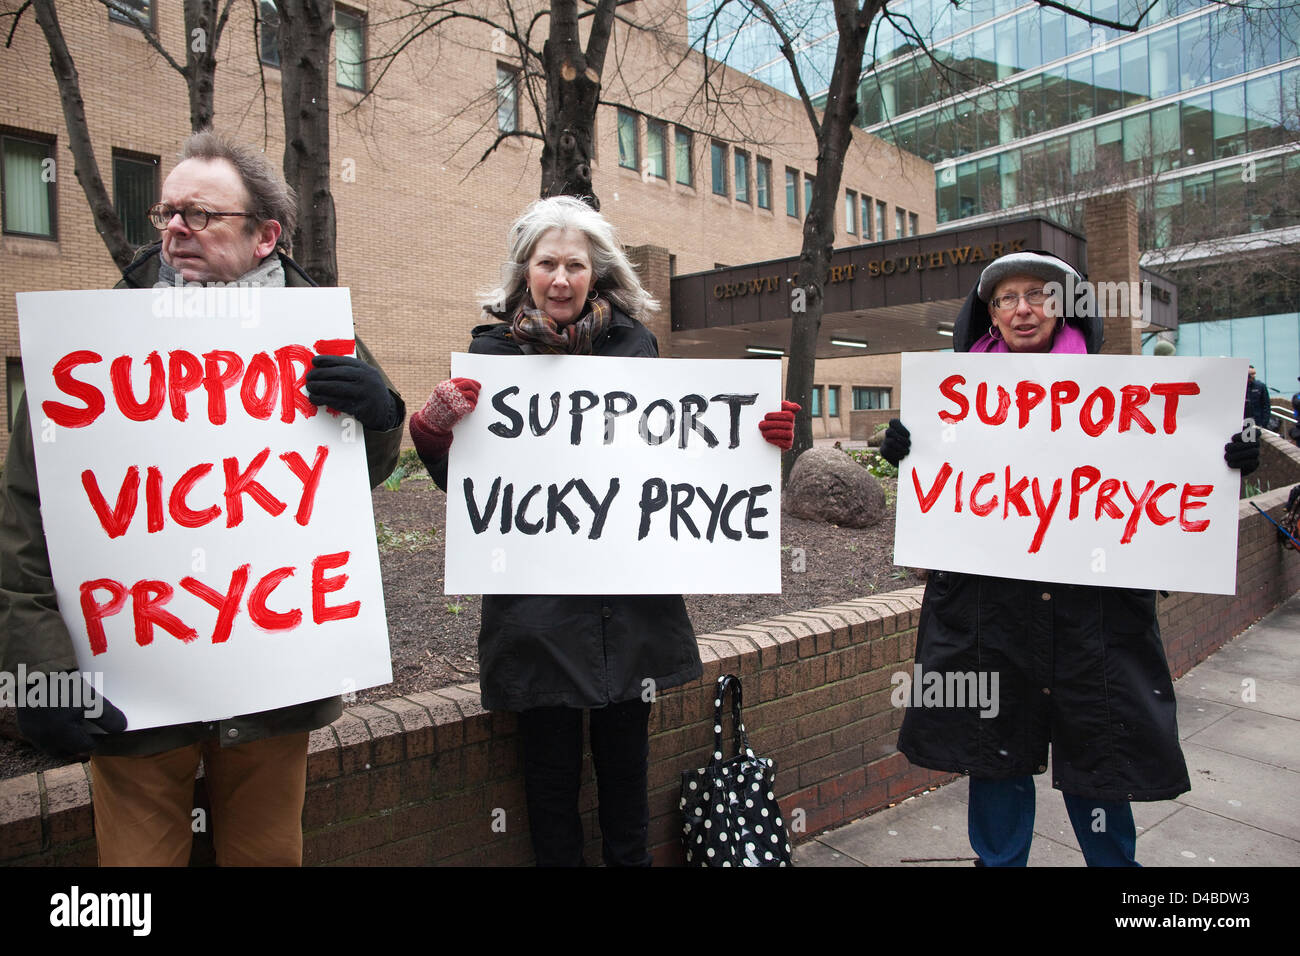 Southwark Crown Court, London, UK. 11th March 2013. Supporters of Vicky Pryce as she arrives at Southwark Court - Stock Image